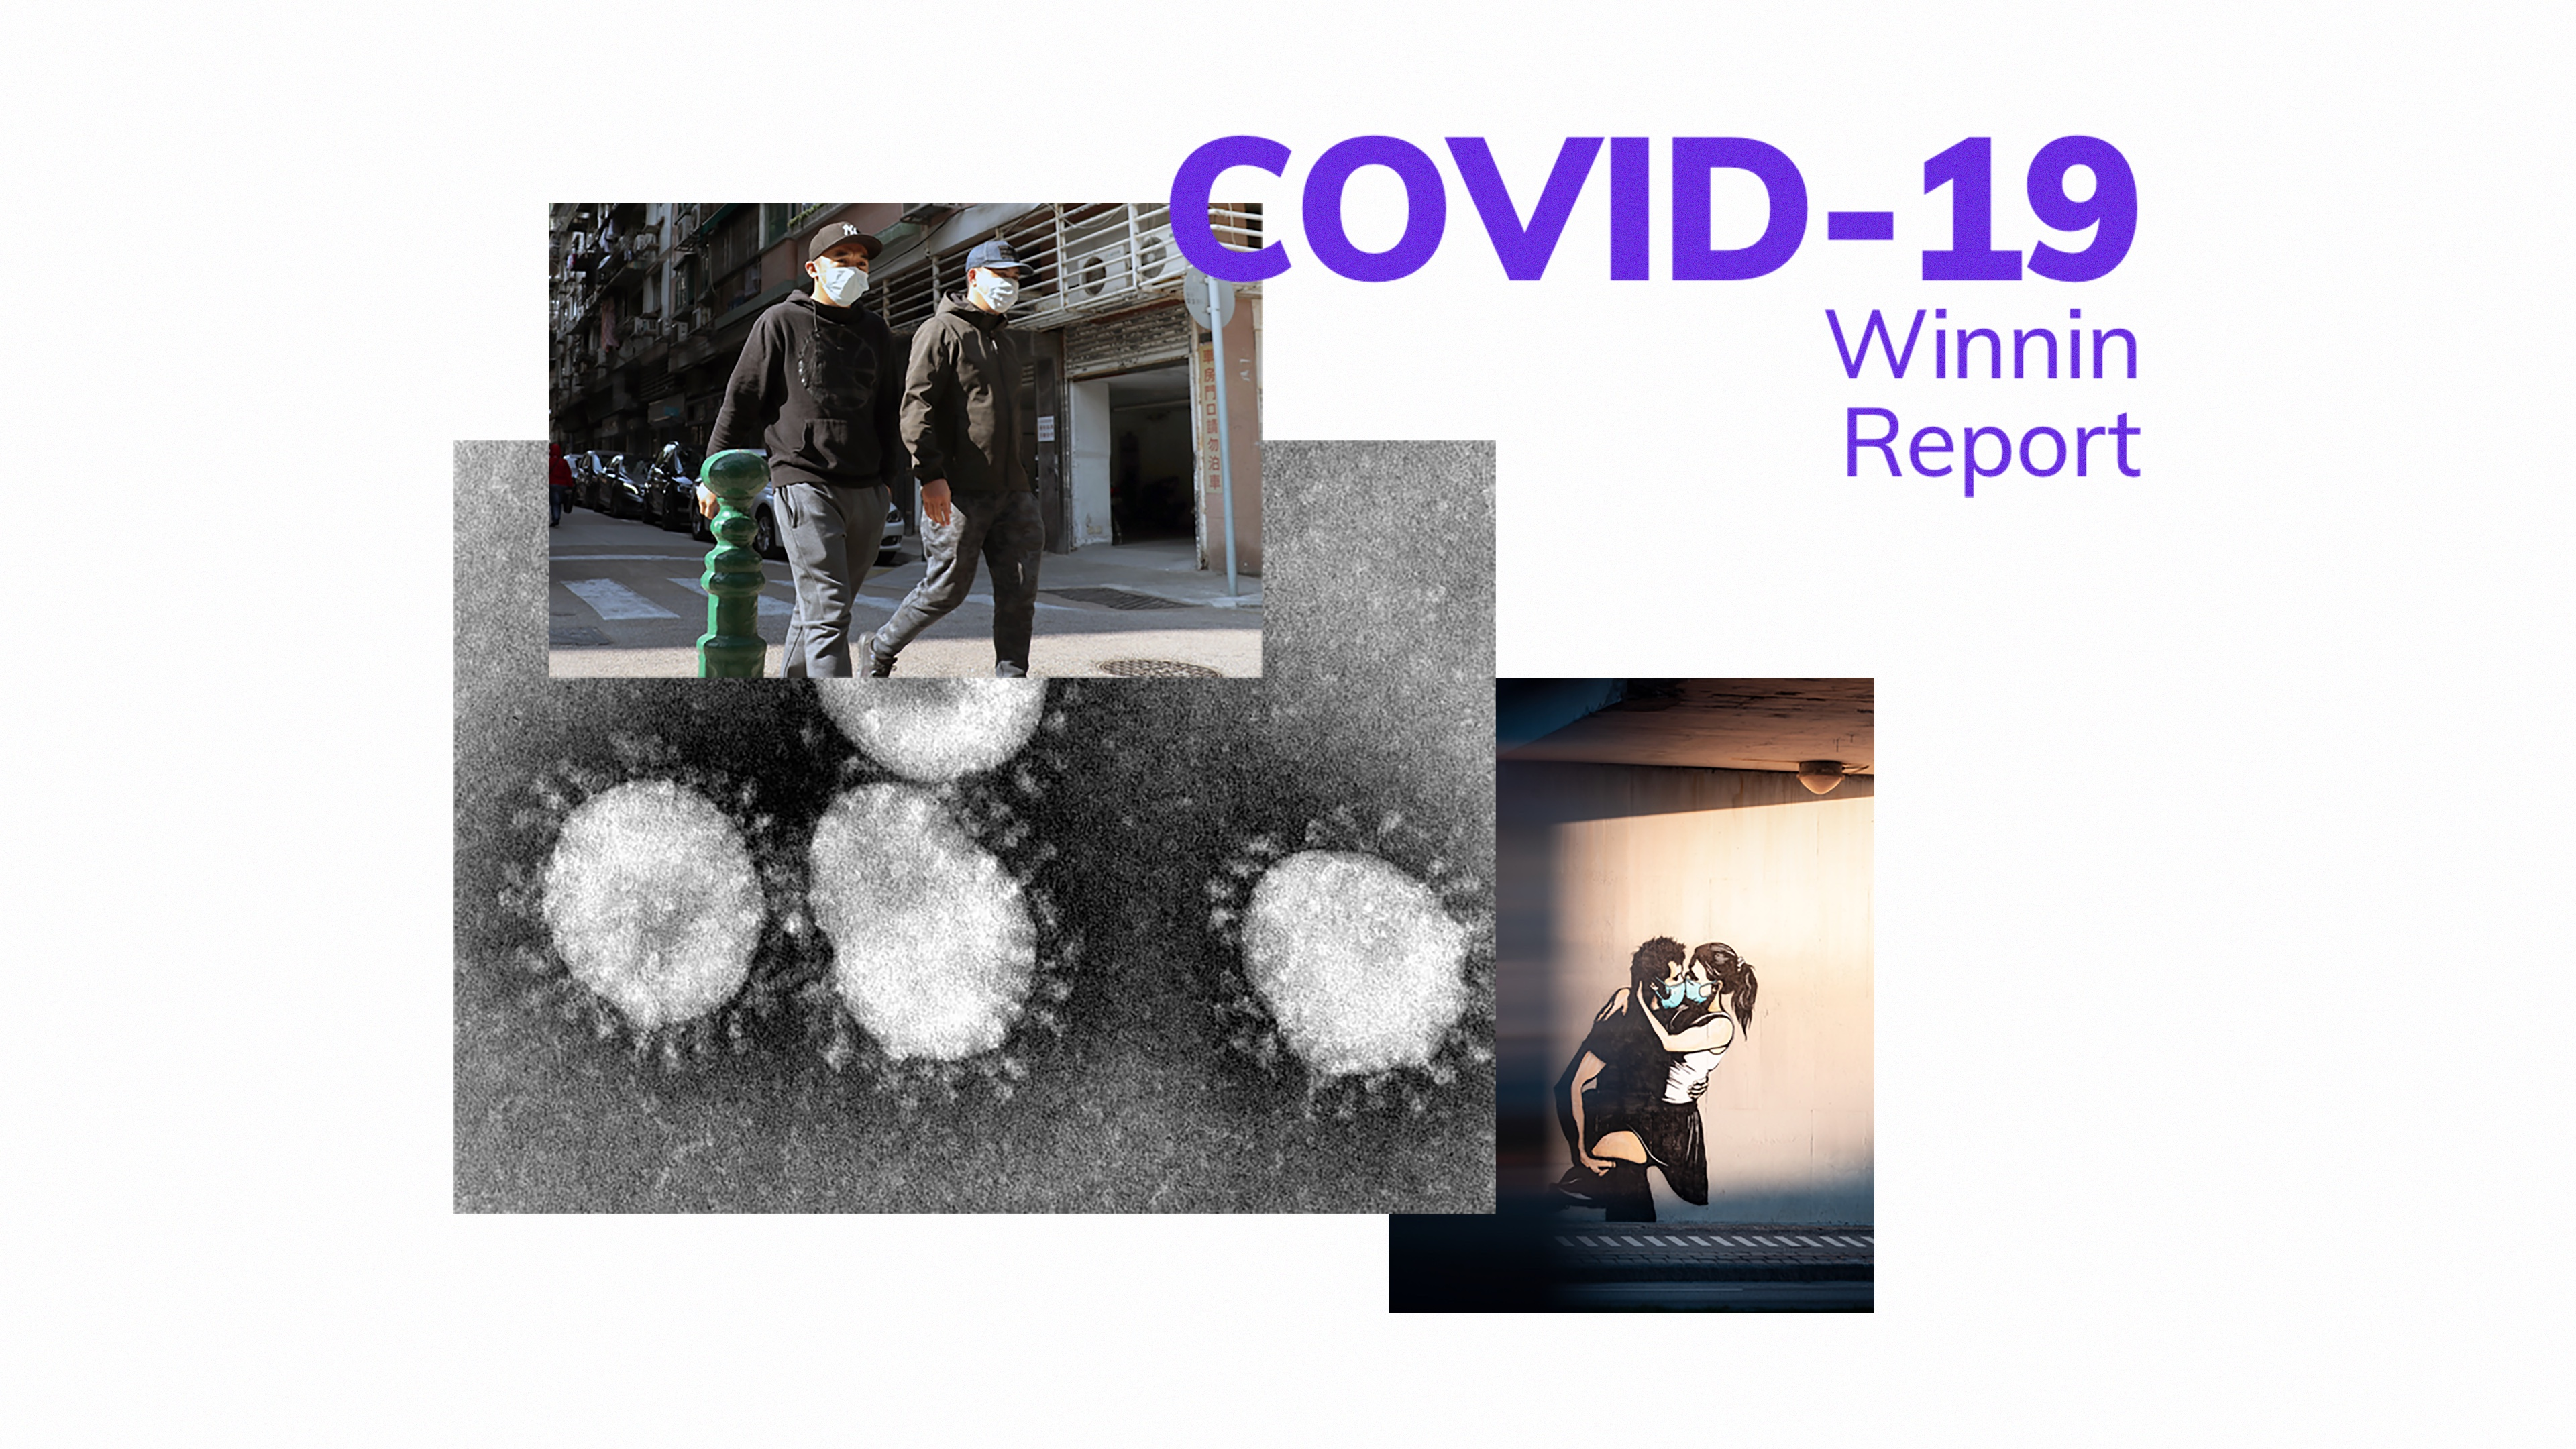 winnin report covid-19